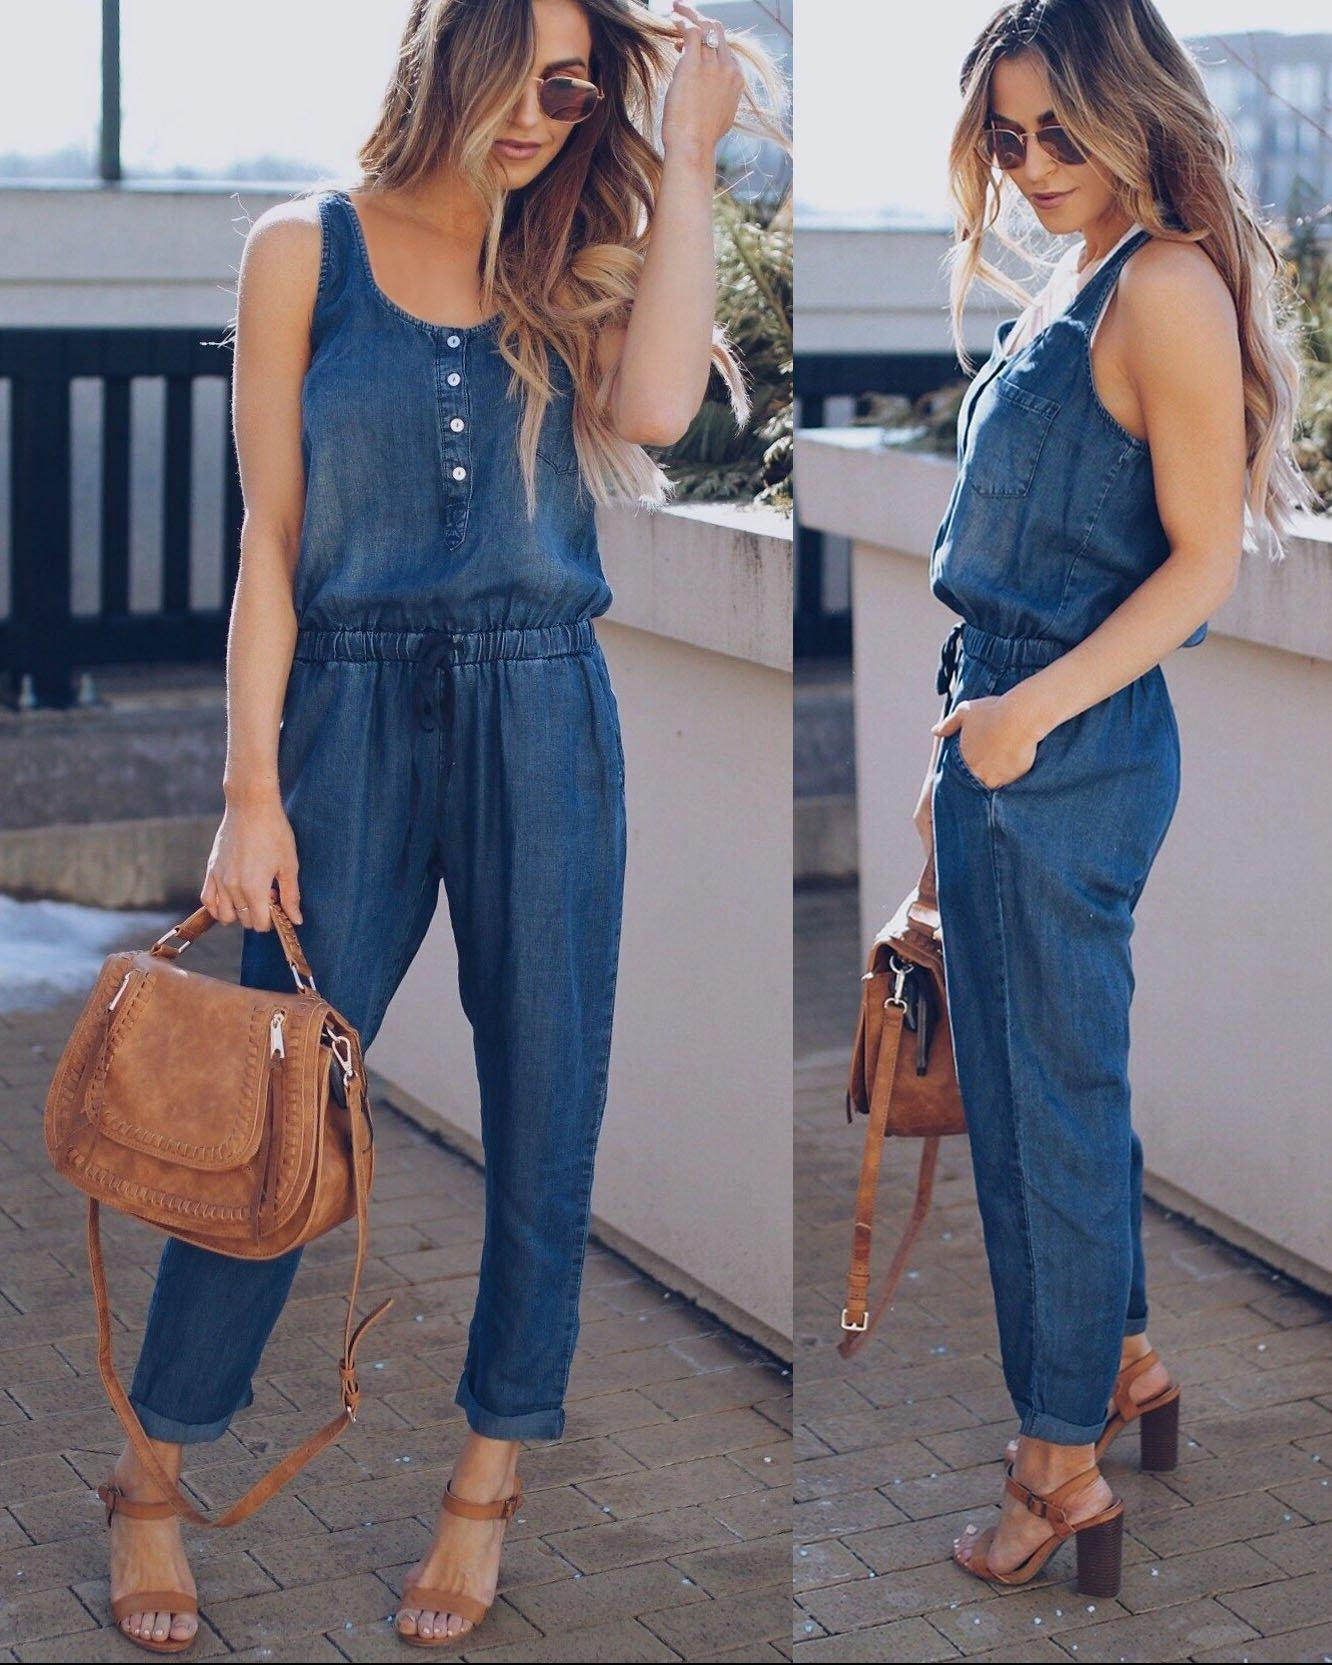 44518b326269 2019 Women Summer New Solid Sleeveless Denim Jumpsuit Long Trousers  Clubwear Blue Casual Fashion Romper Pockets Jeans Jumpsuits From Huiwu